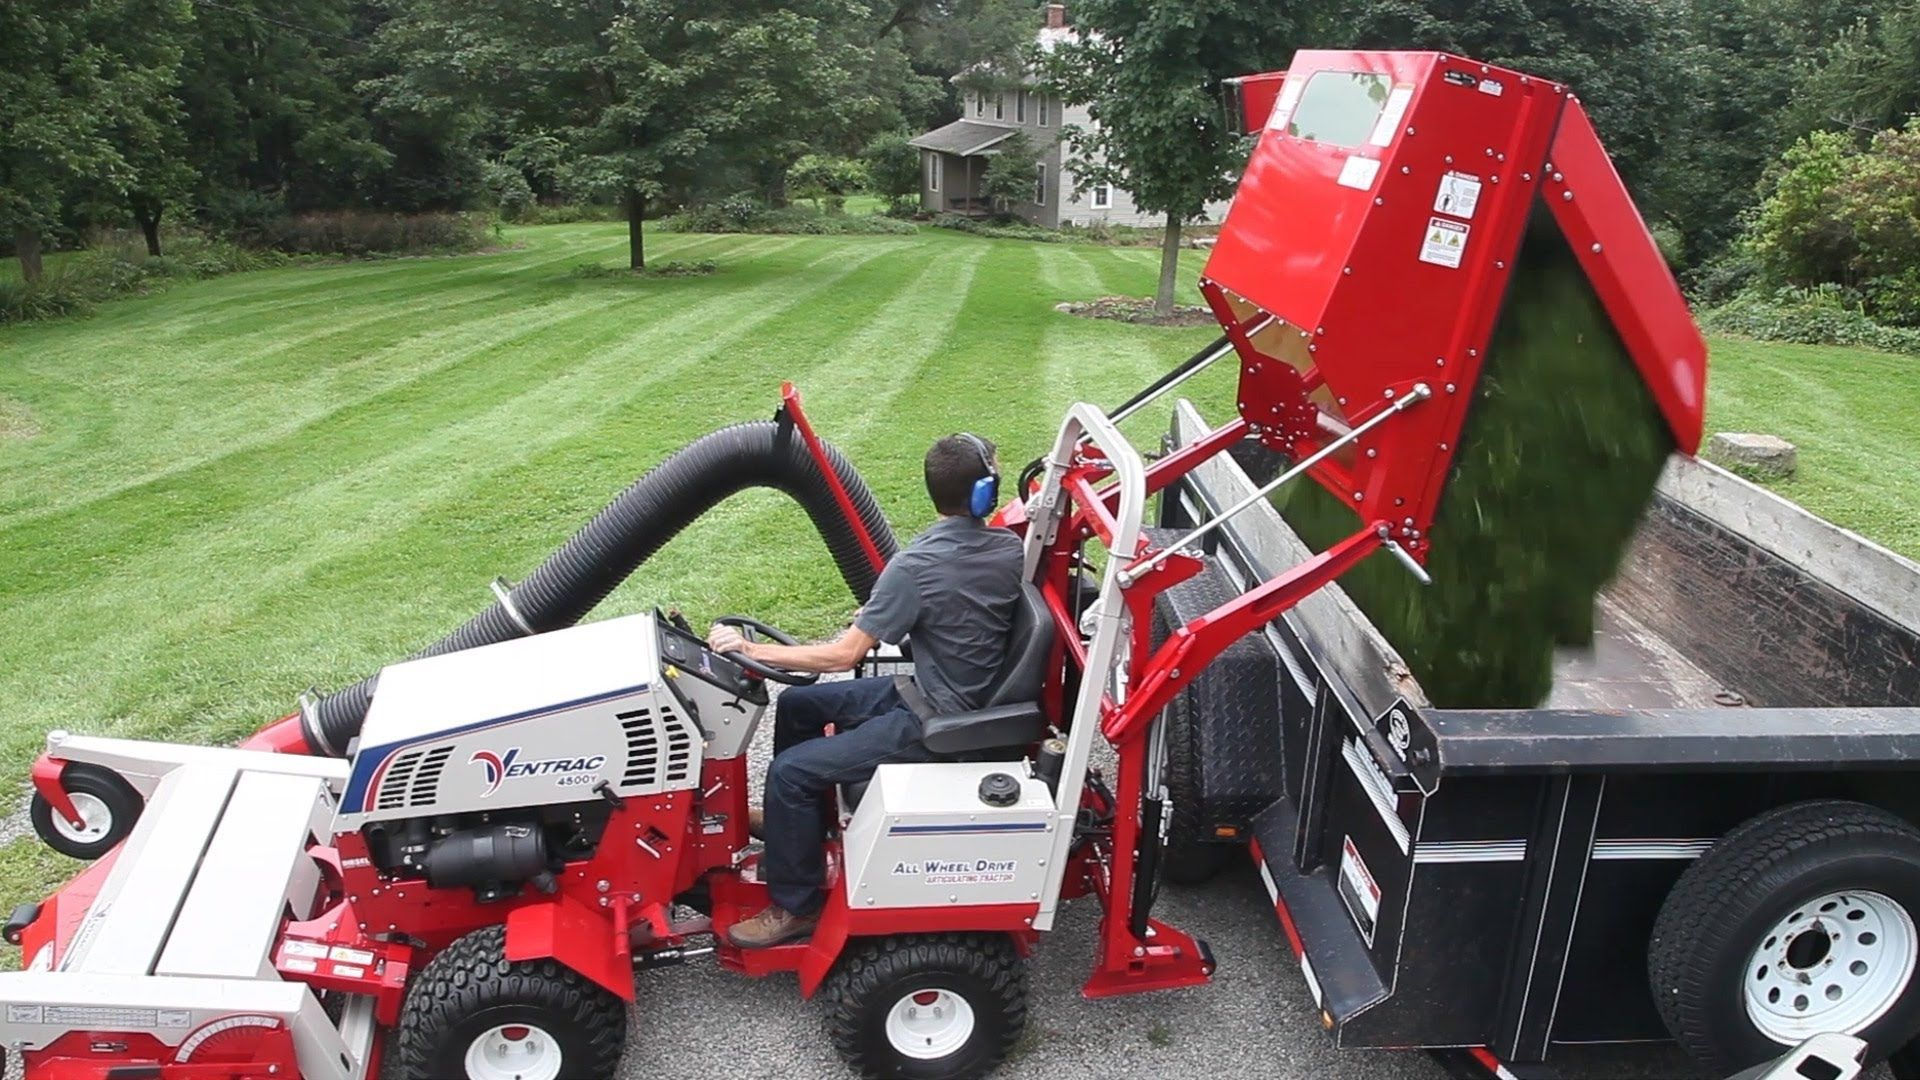 The Ventrac Rv602 Vacuum Collection System Makes Quick